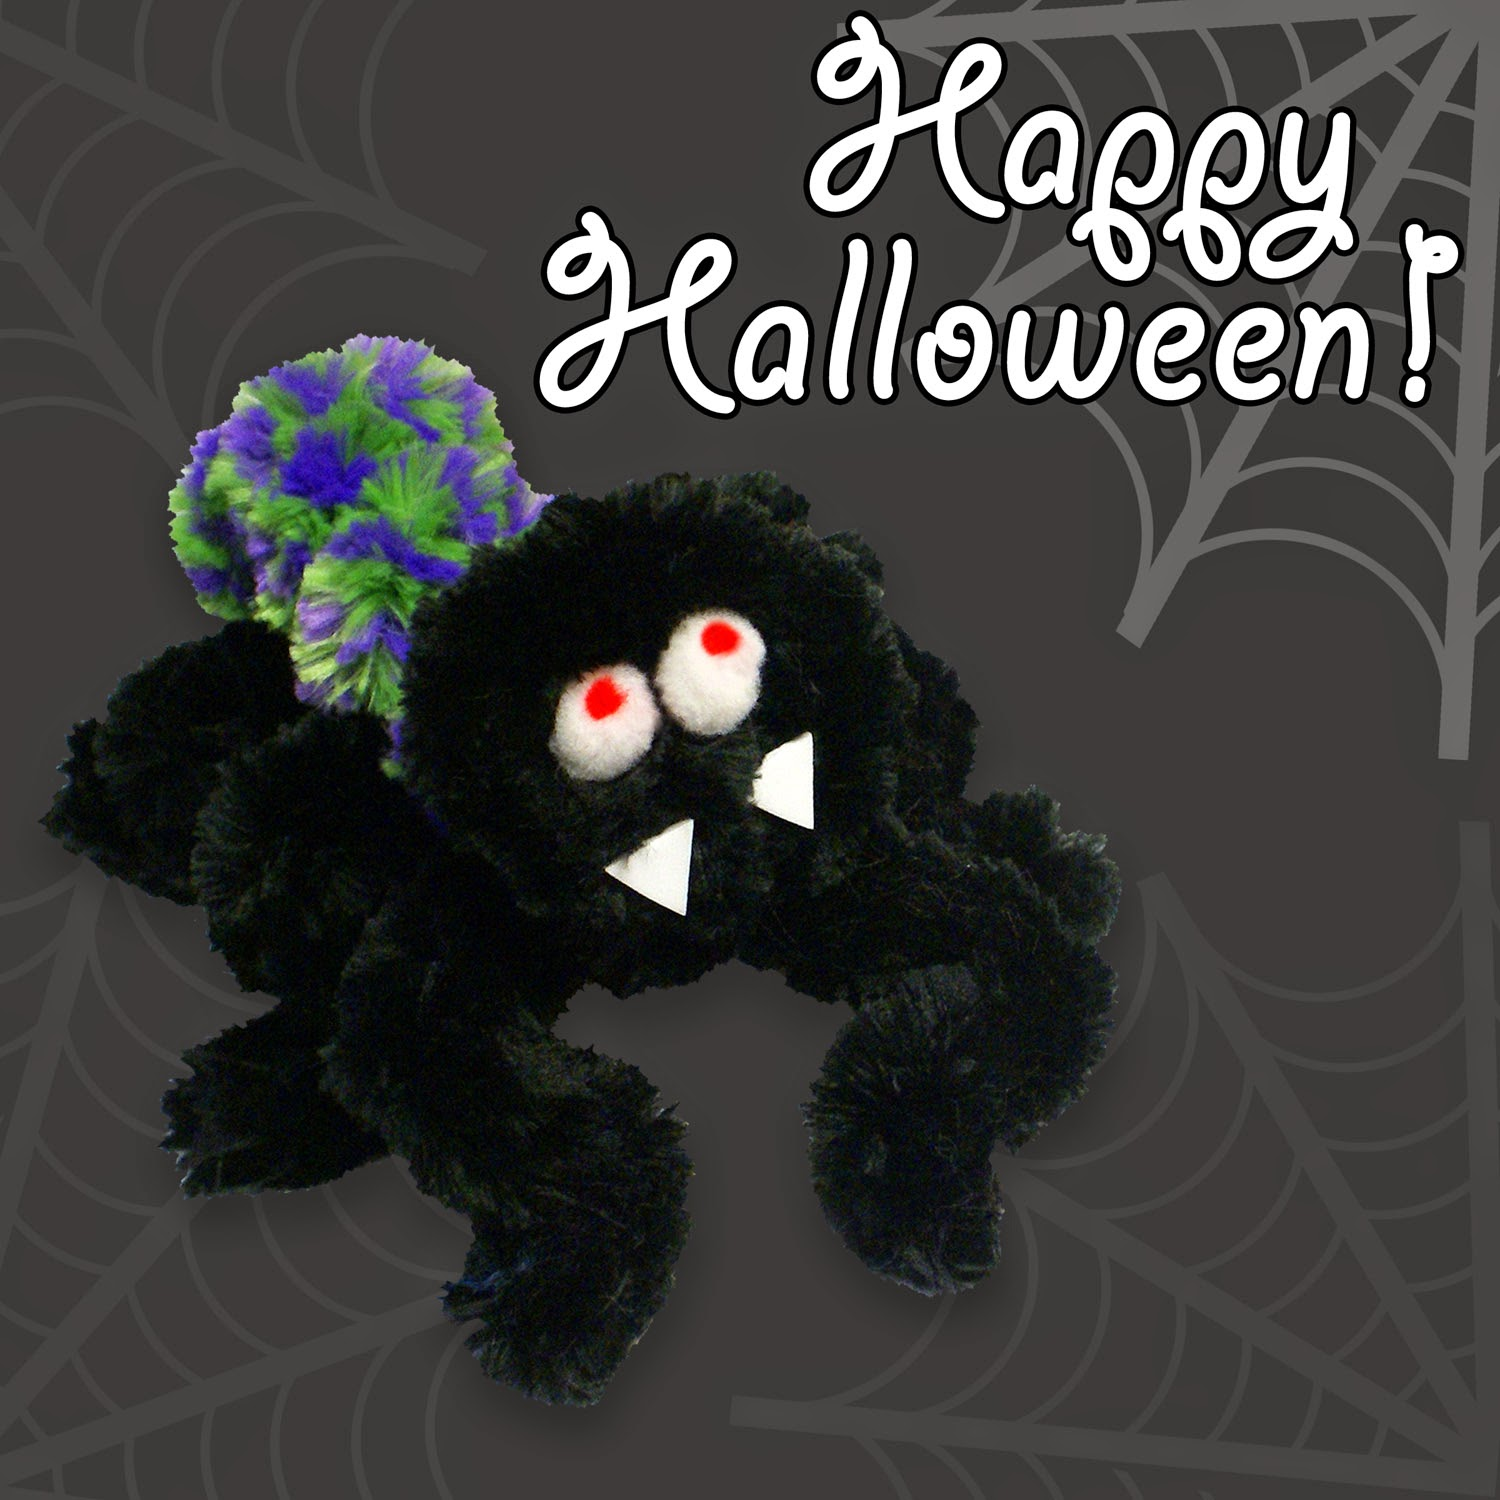 Happy Halloween! Noodle Spider from Pepperell Braiding Company